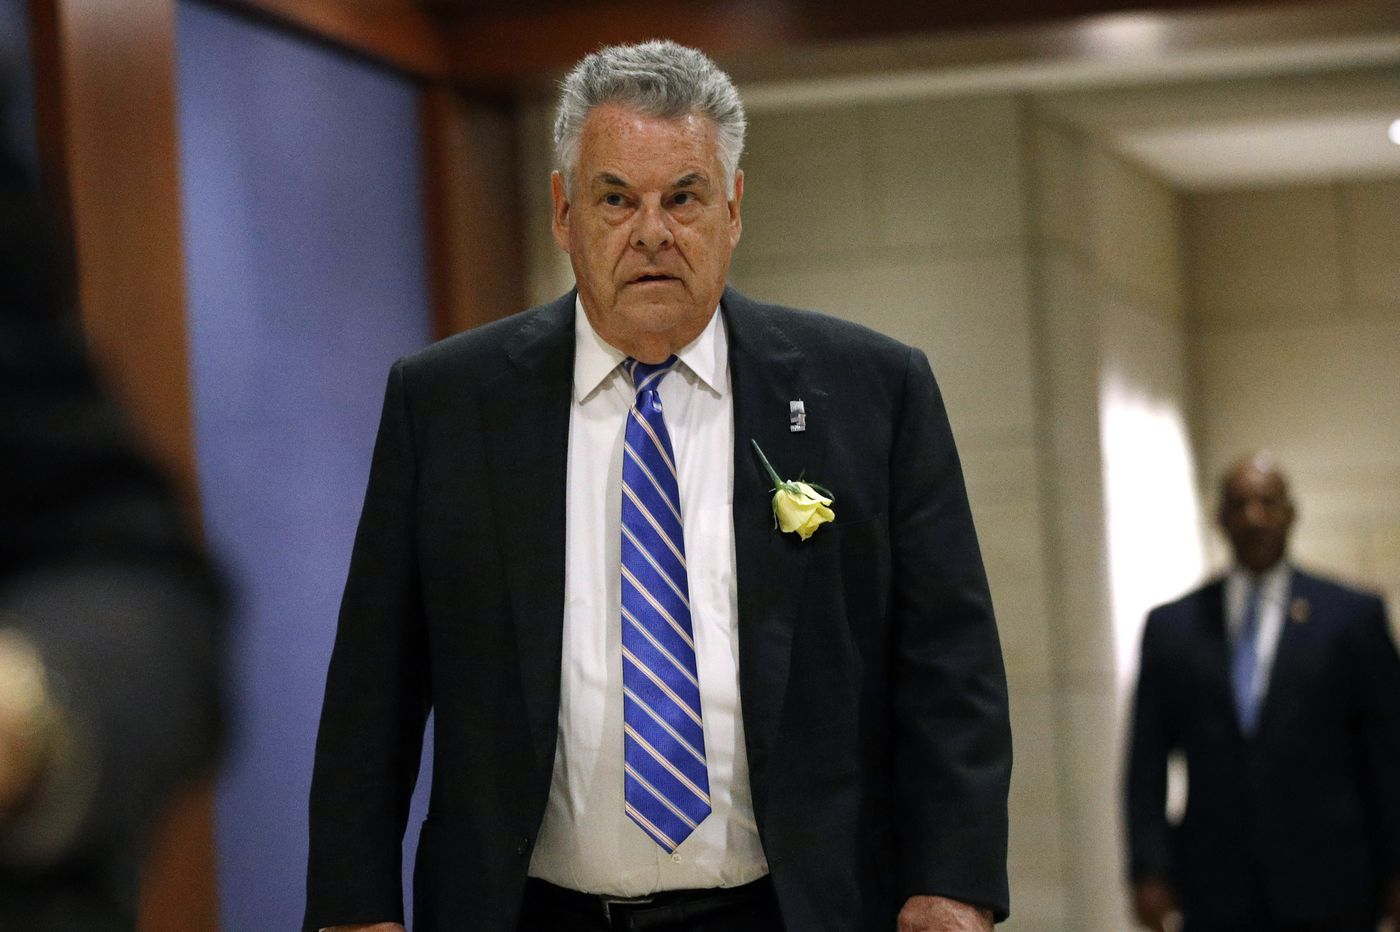 New York congressman Peter King retiring, giving Democrats new House target